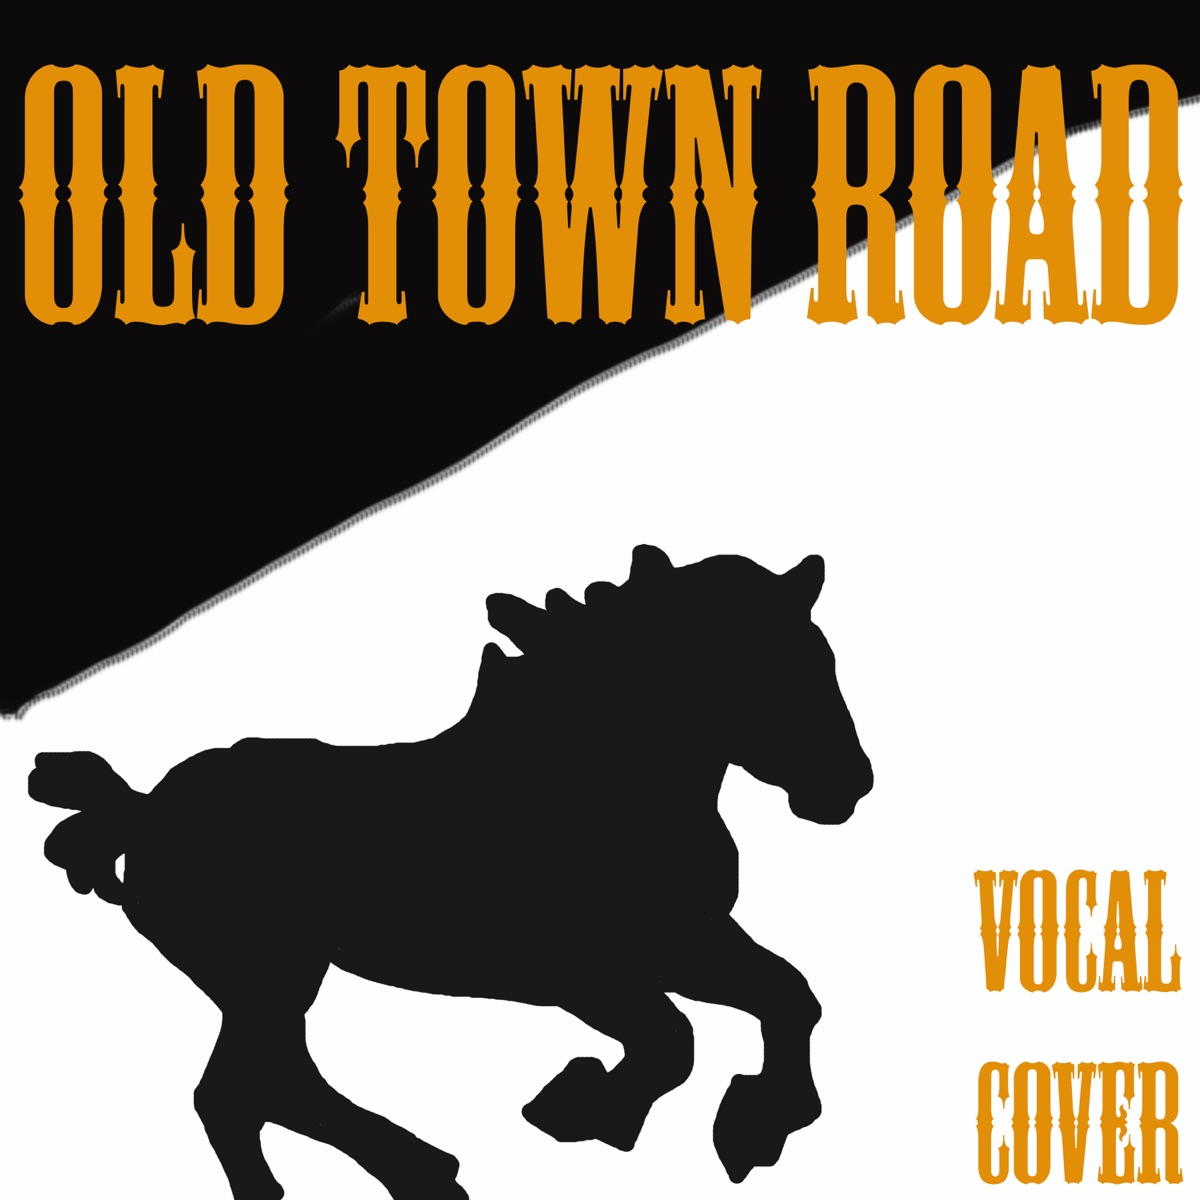 Old Town Road Vocal Cover of Lil Nas X - Single Cowboy Man CD cover